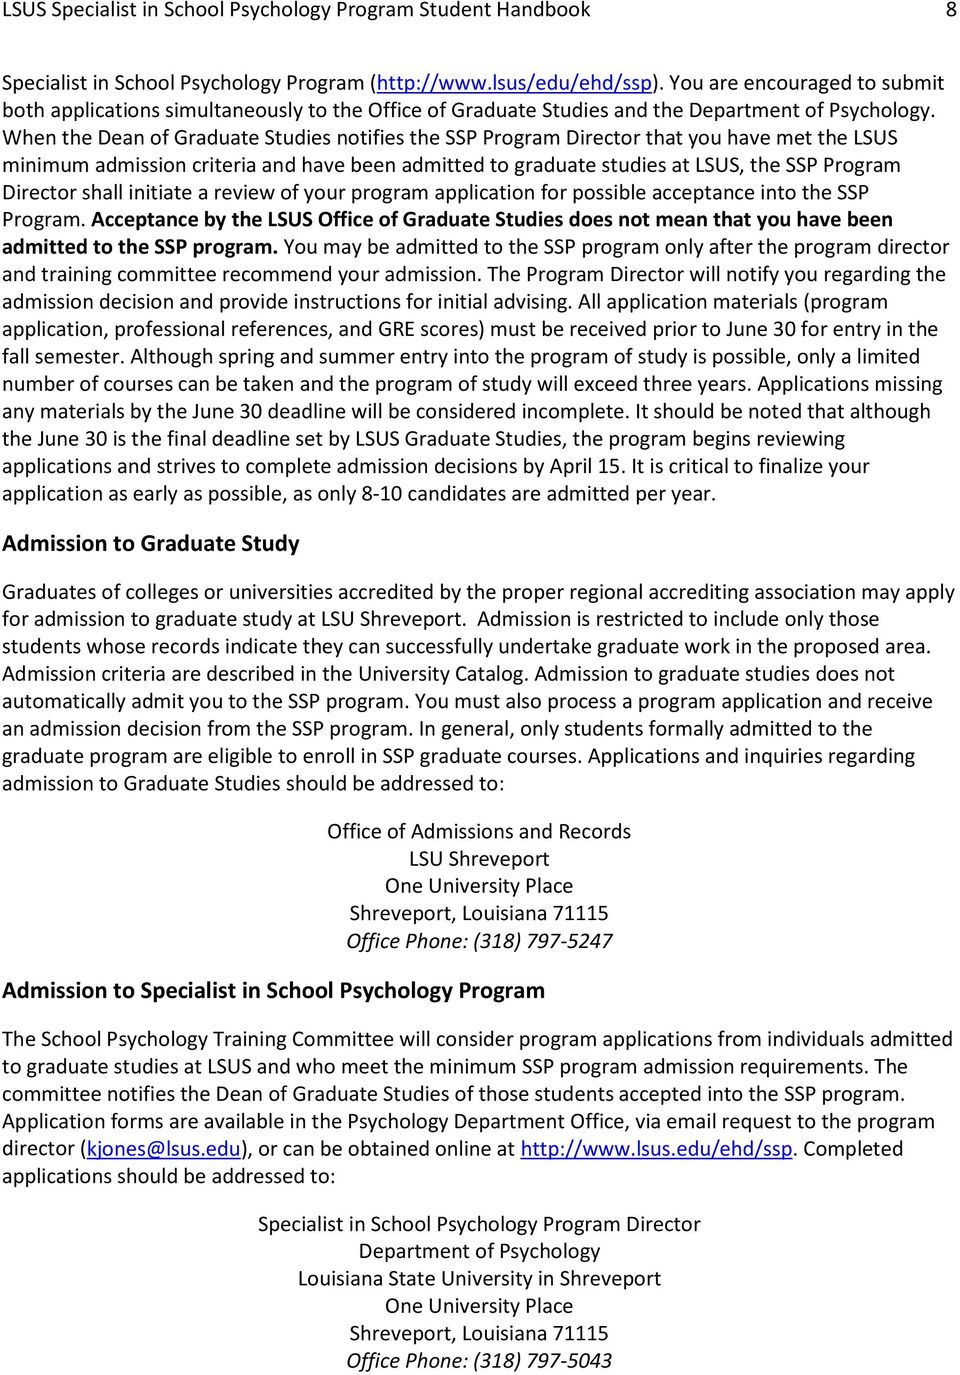 When the Dean of Graduate Studies notifies the SSP Program Director that you have met the LSUS minimum admission criteria and have been admitted to graduate studies at LSUS, the SSP Program Director